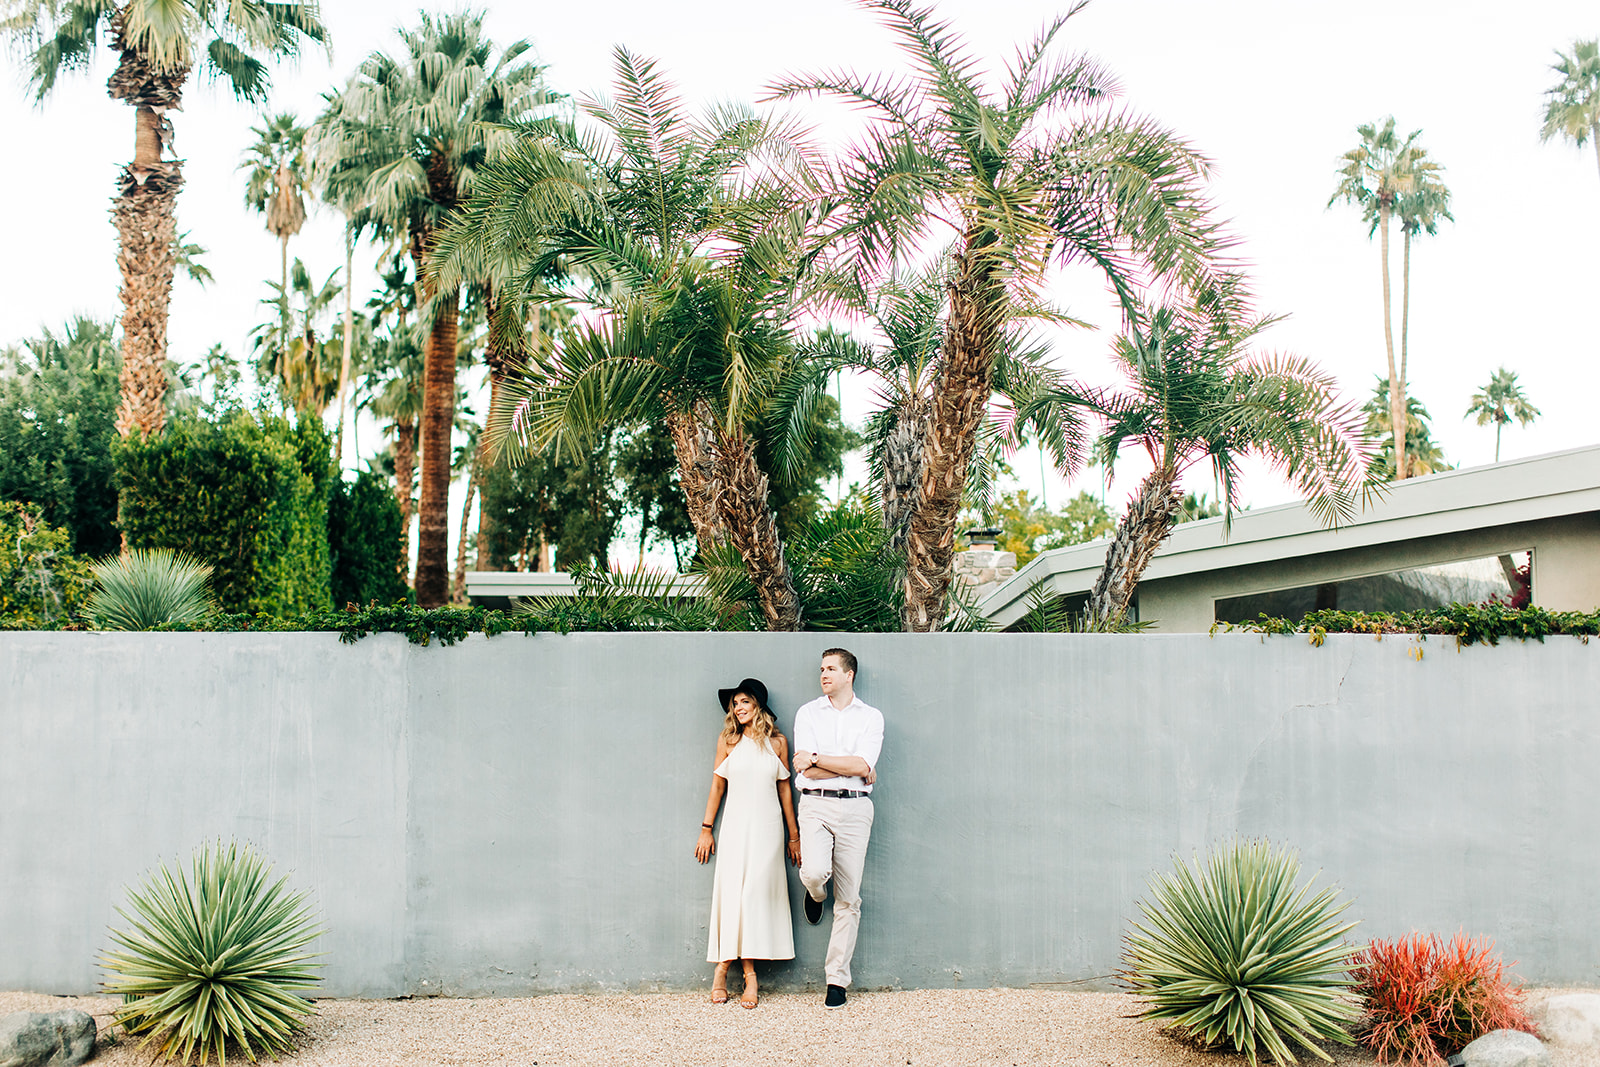 Paulina-Drew_Palm-Springs-Engagement-Photos_Clarisse-Rae_Southern-California-Wedding-Photographer-33